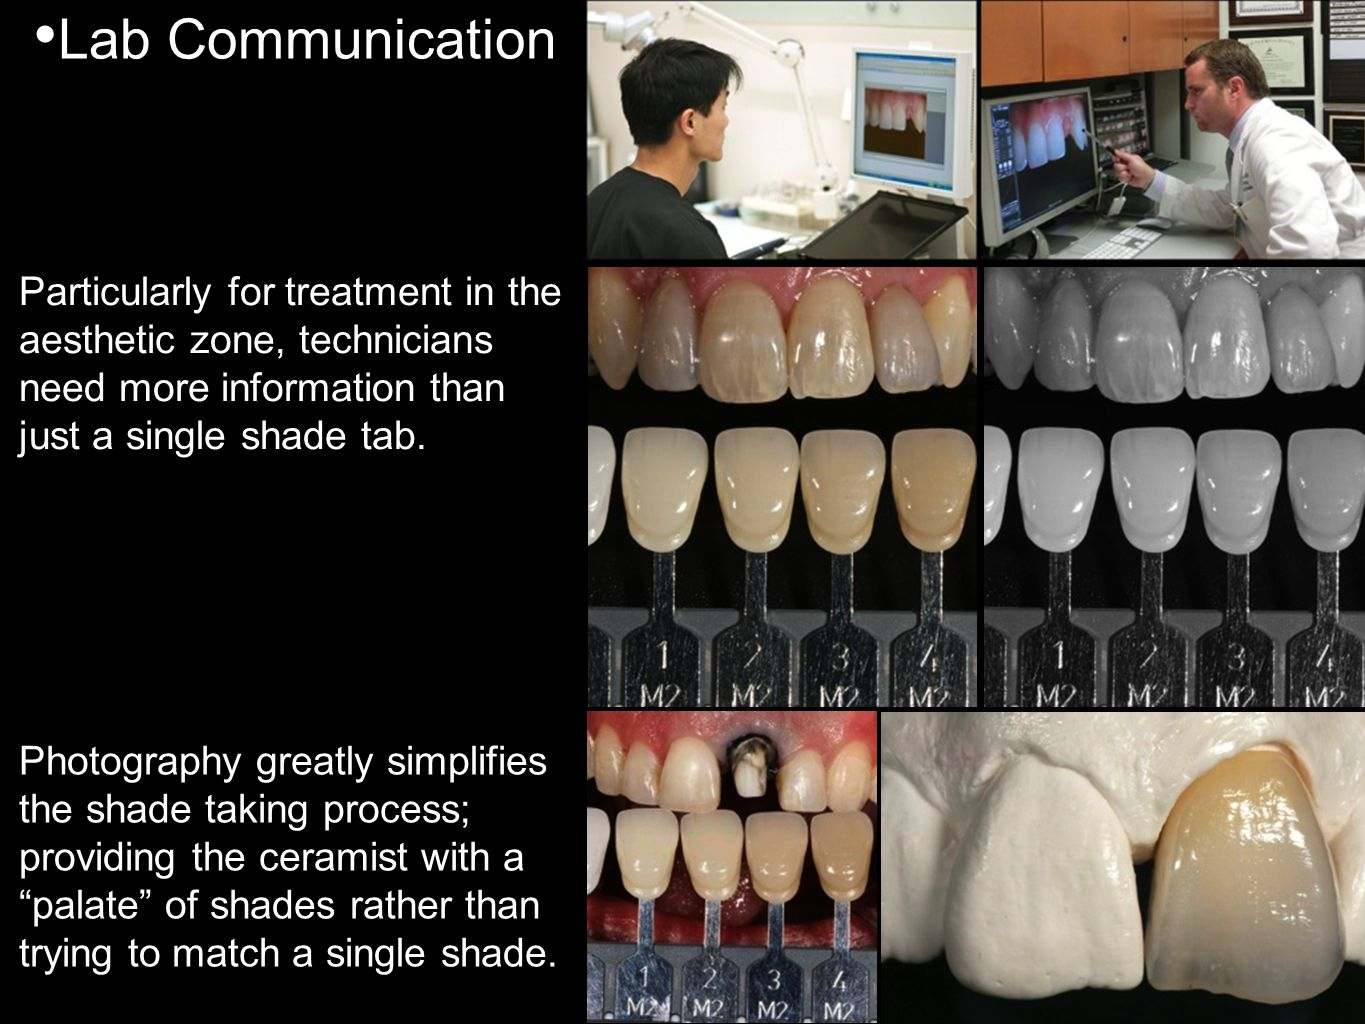 Lab Communication Particularly for treatment in the aesthetic zone, technicians need more information than just a single shade tab.